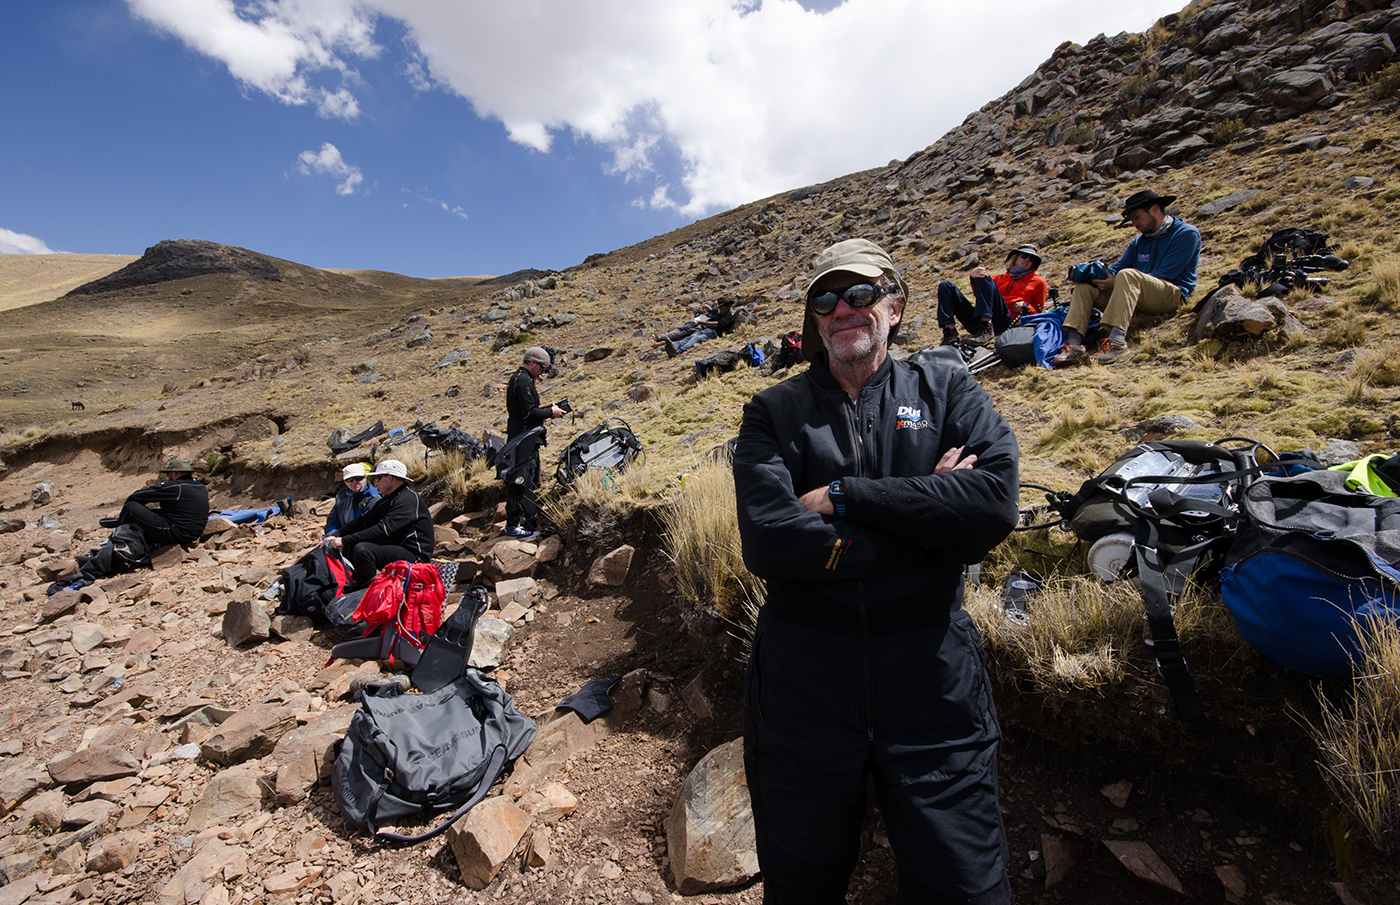 George Watson, former Craig Hospital spinal cord injury patient, hiking as he returns to the site of his accident three years after his injury